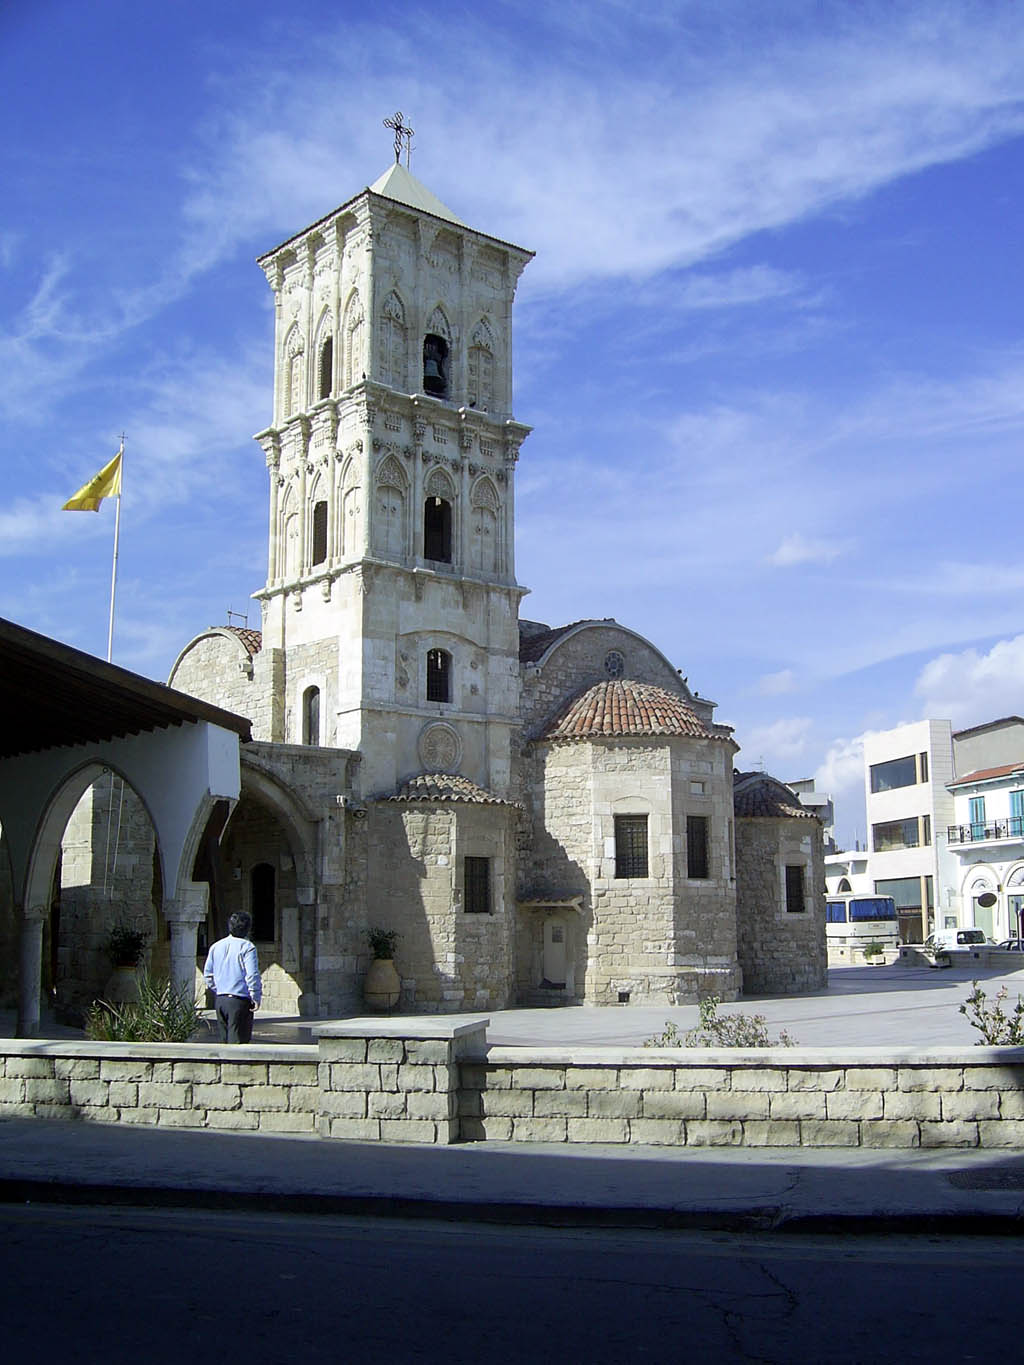 Hotels in Larnaca  Best Rates Reviews and Photos of Larnaca Hotels  OrangeSmilecom